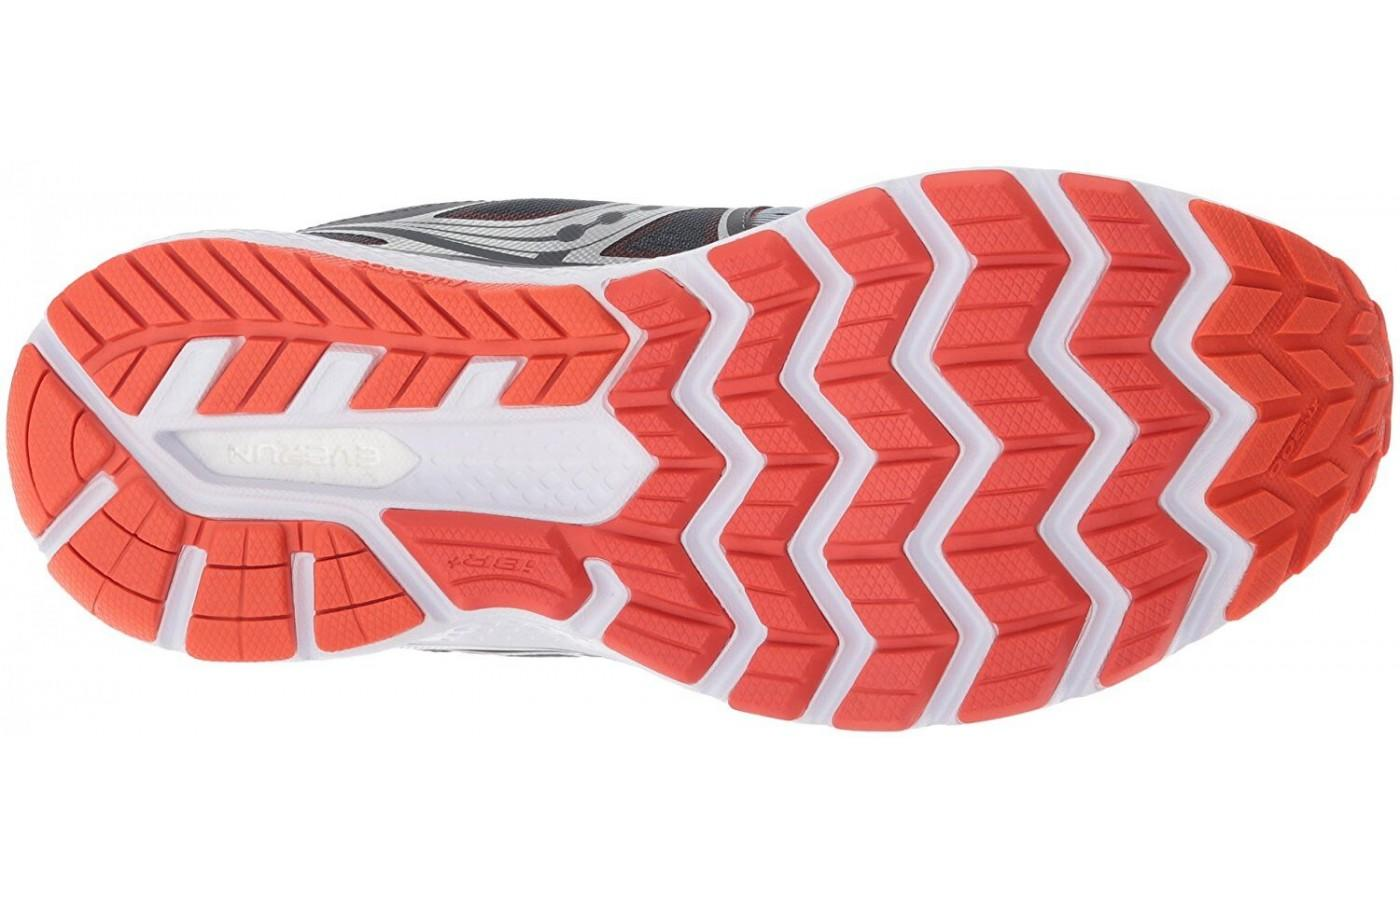 The TRI-FLEX outsole pattern of the Saucony Triumph ISO 3 running shoe